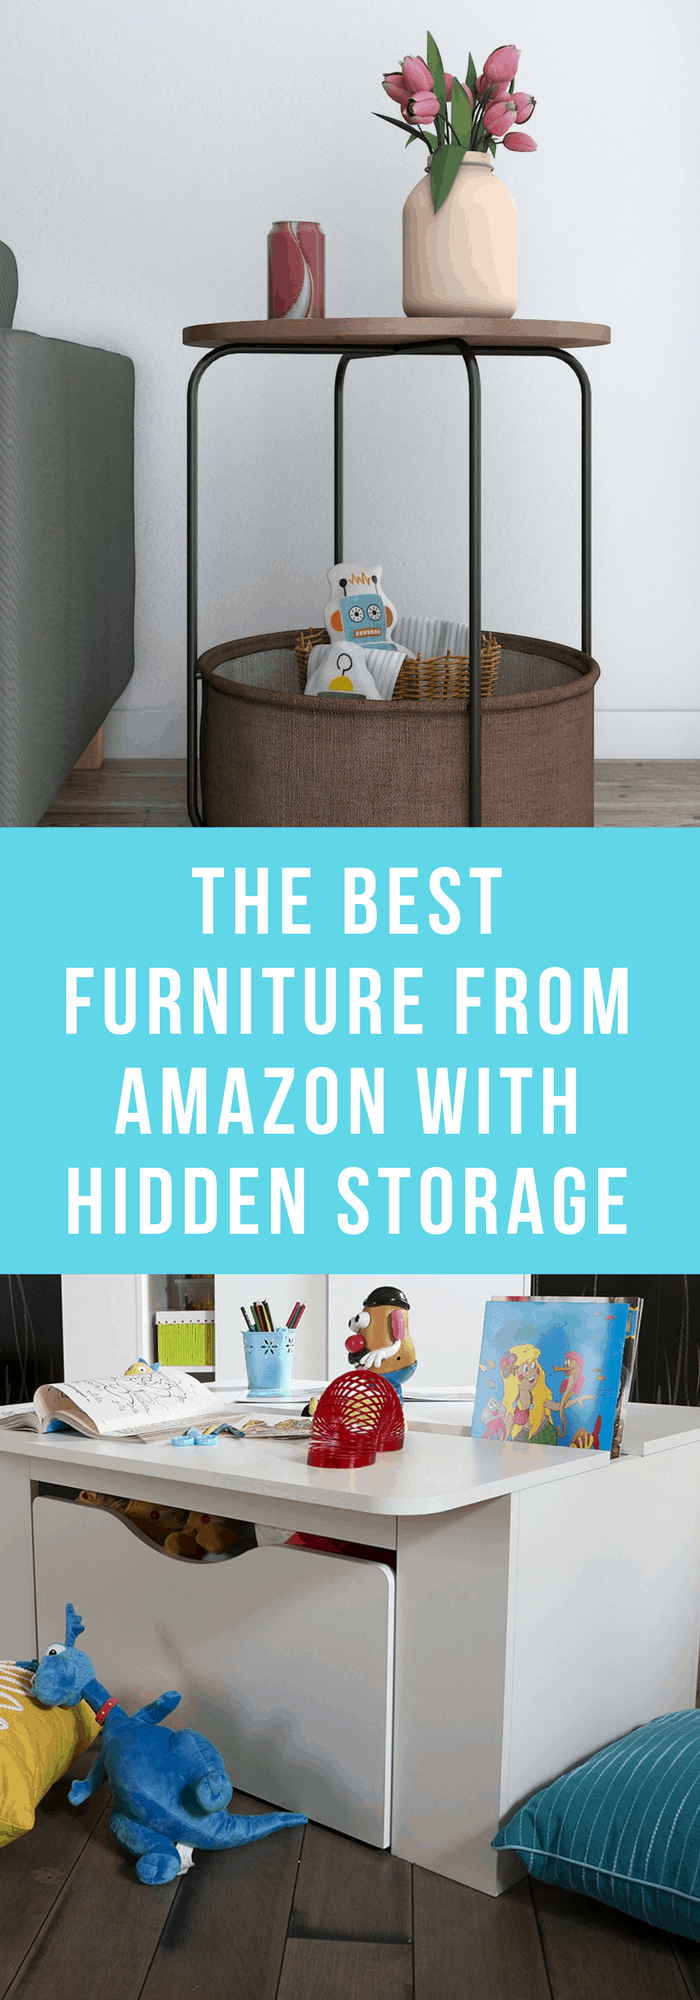 Furniture--The Best Furniture from Amazon with Hidden Storage--The Organized Mom